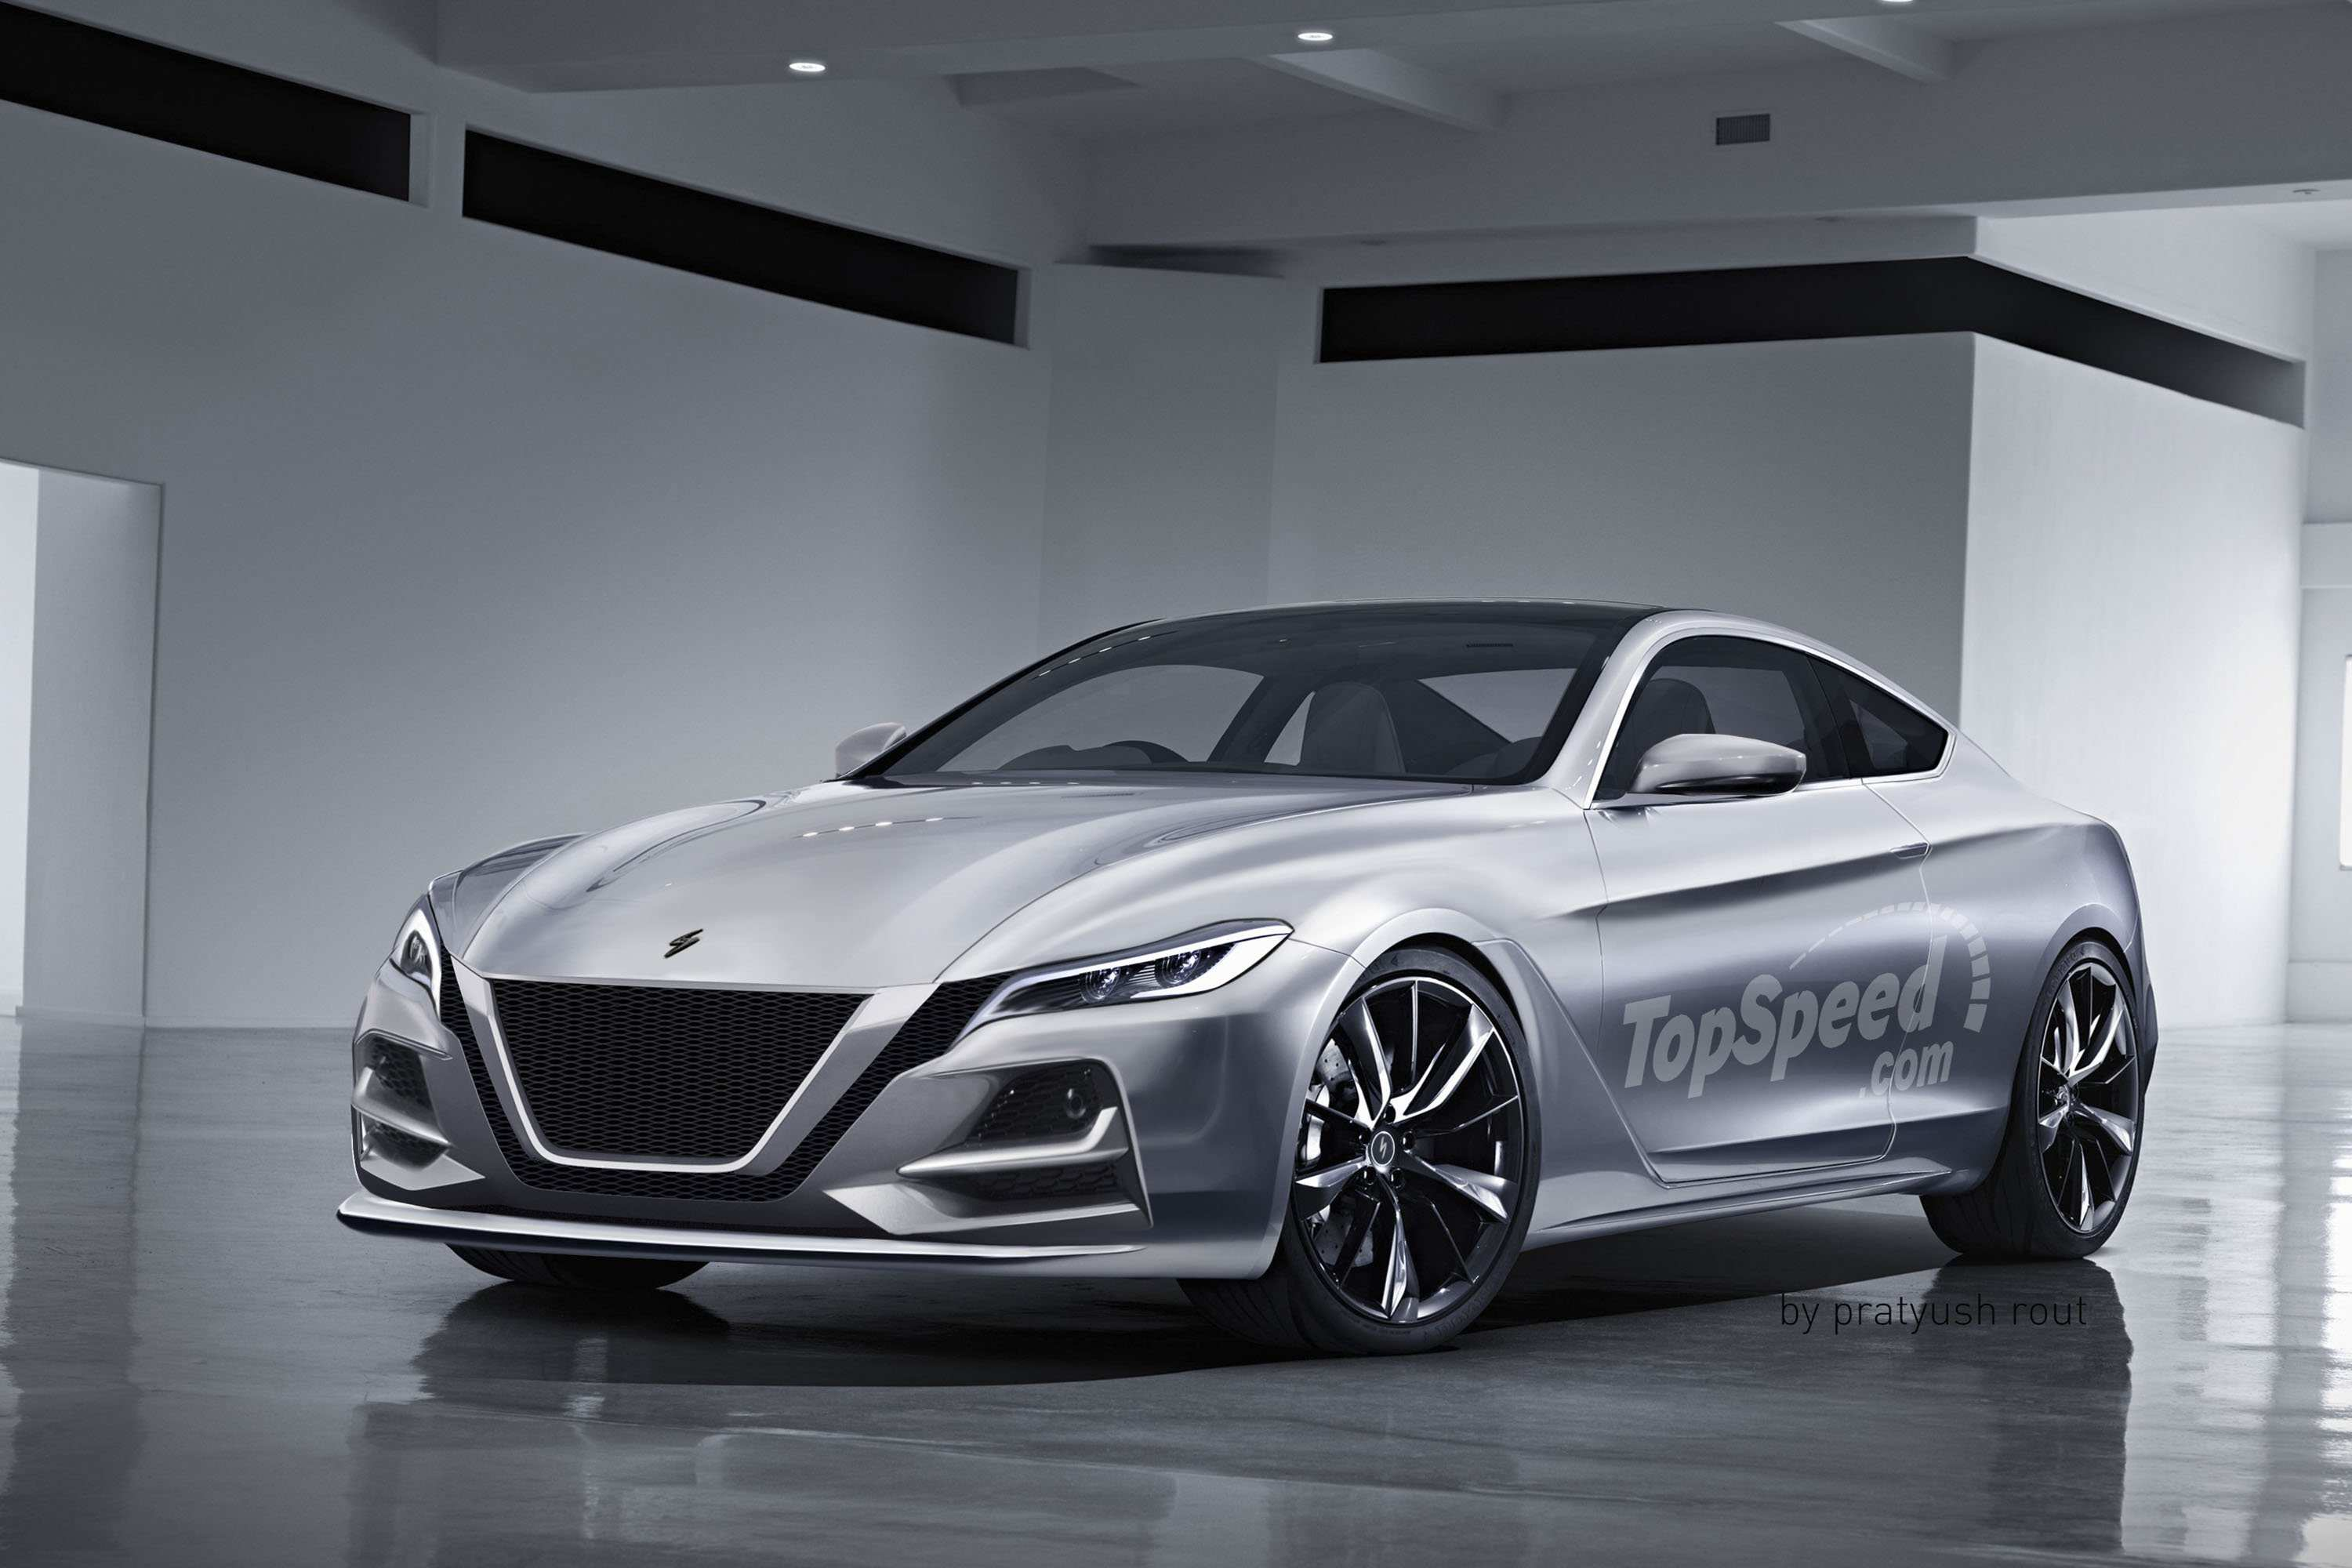 42 New Nissan Cars 2020 Spesification with Nissan Cars 2020